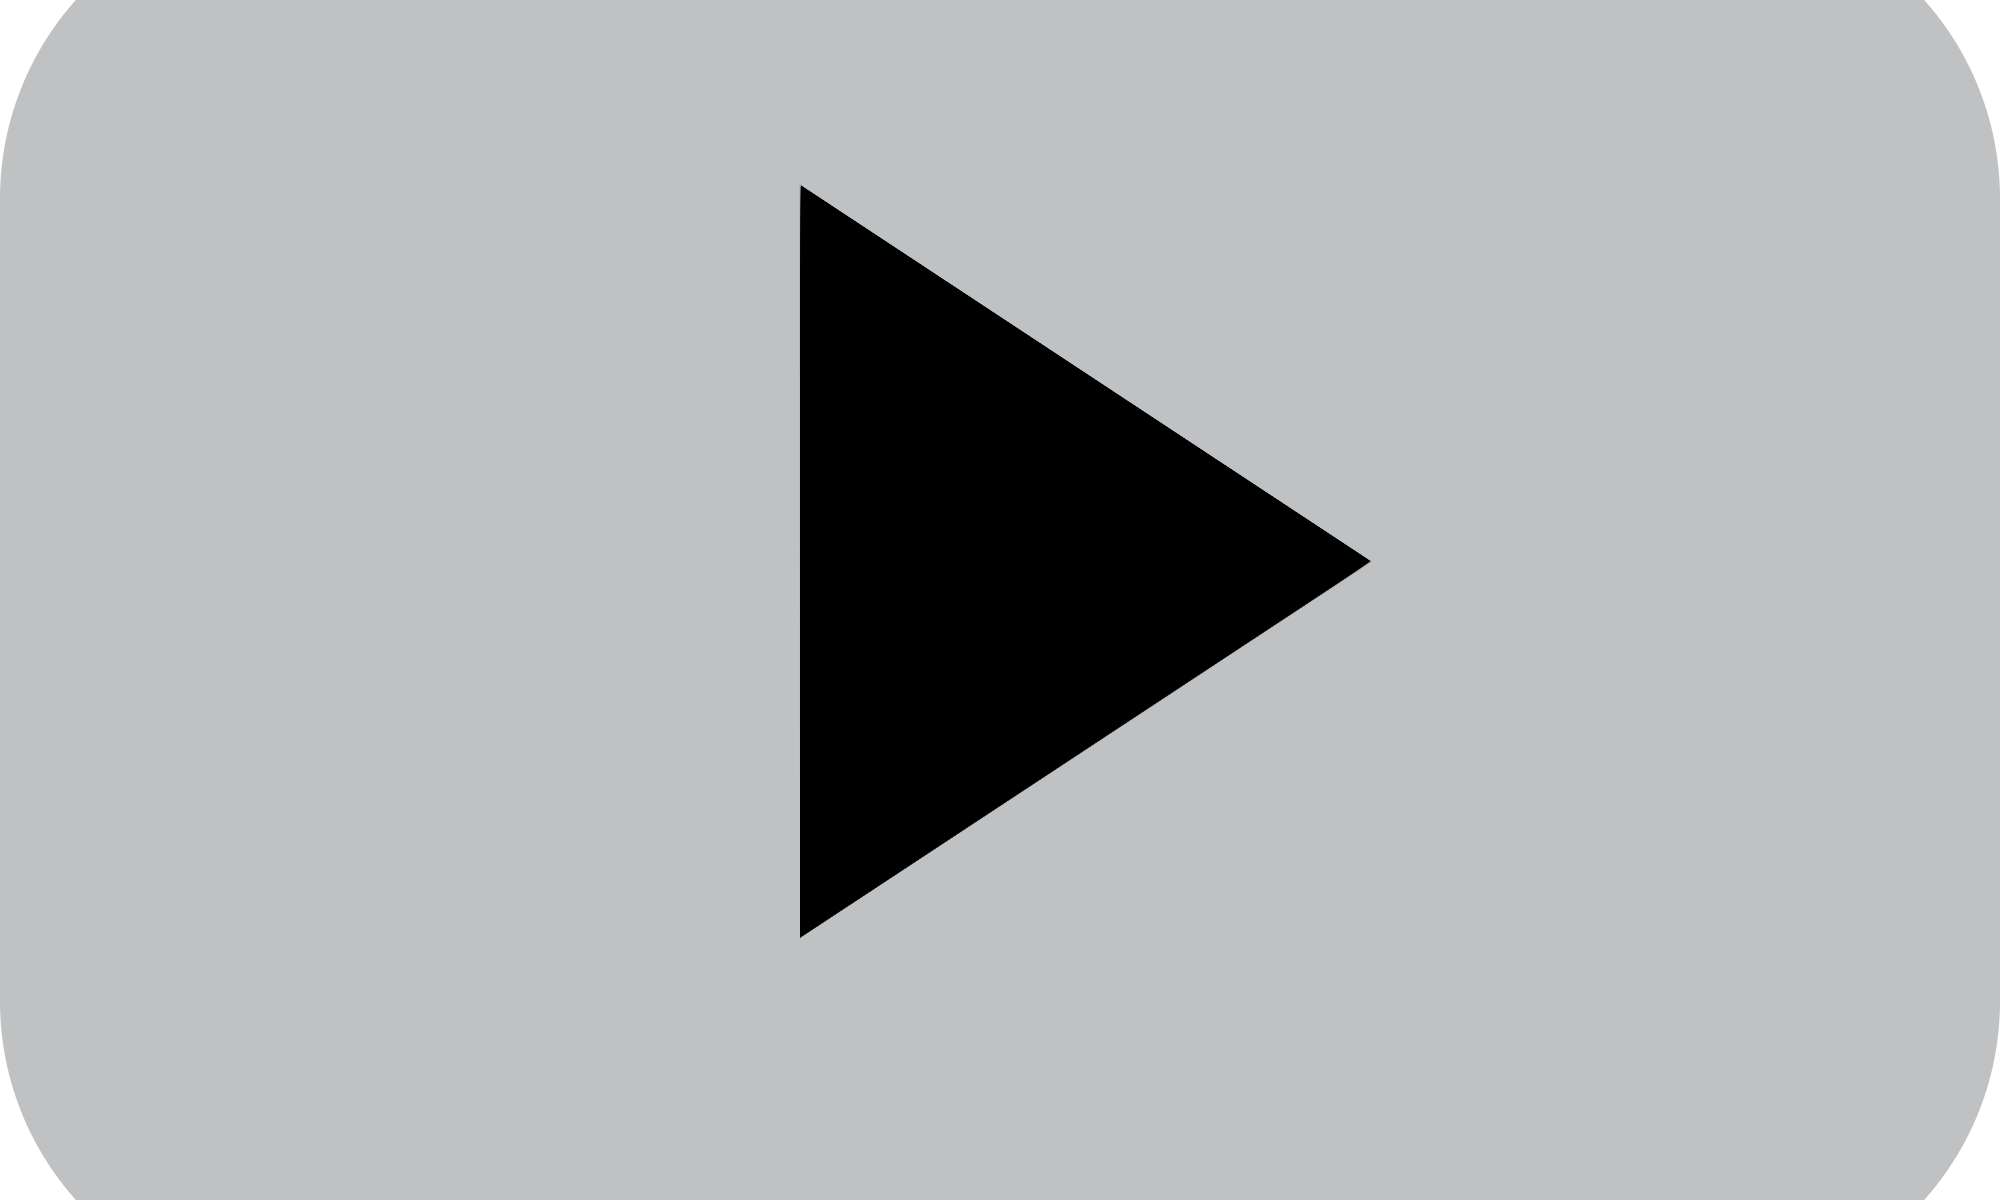 Pause Button or Restart Button-By HalloweenNight (Derived from File:YouTube Silver Play Button.svg) [CC BY-SA 4.0 (https://creativecommons.org/licenses/by-sa/4.0)], via Wikimedia Commons